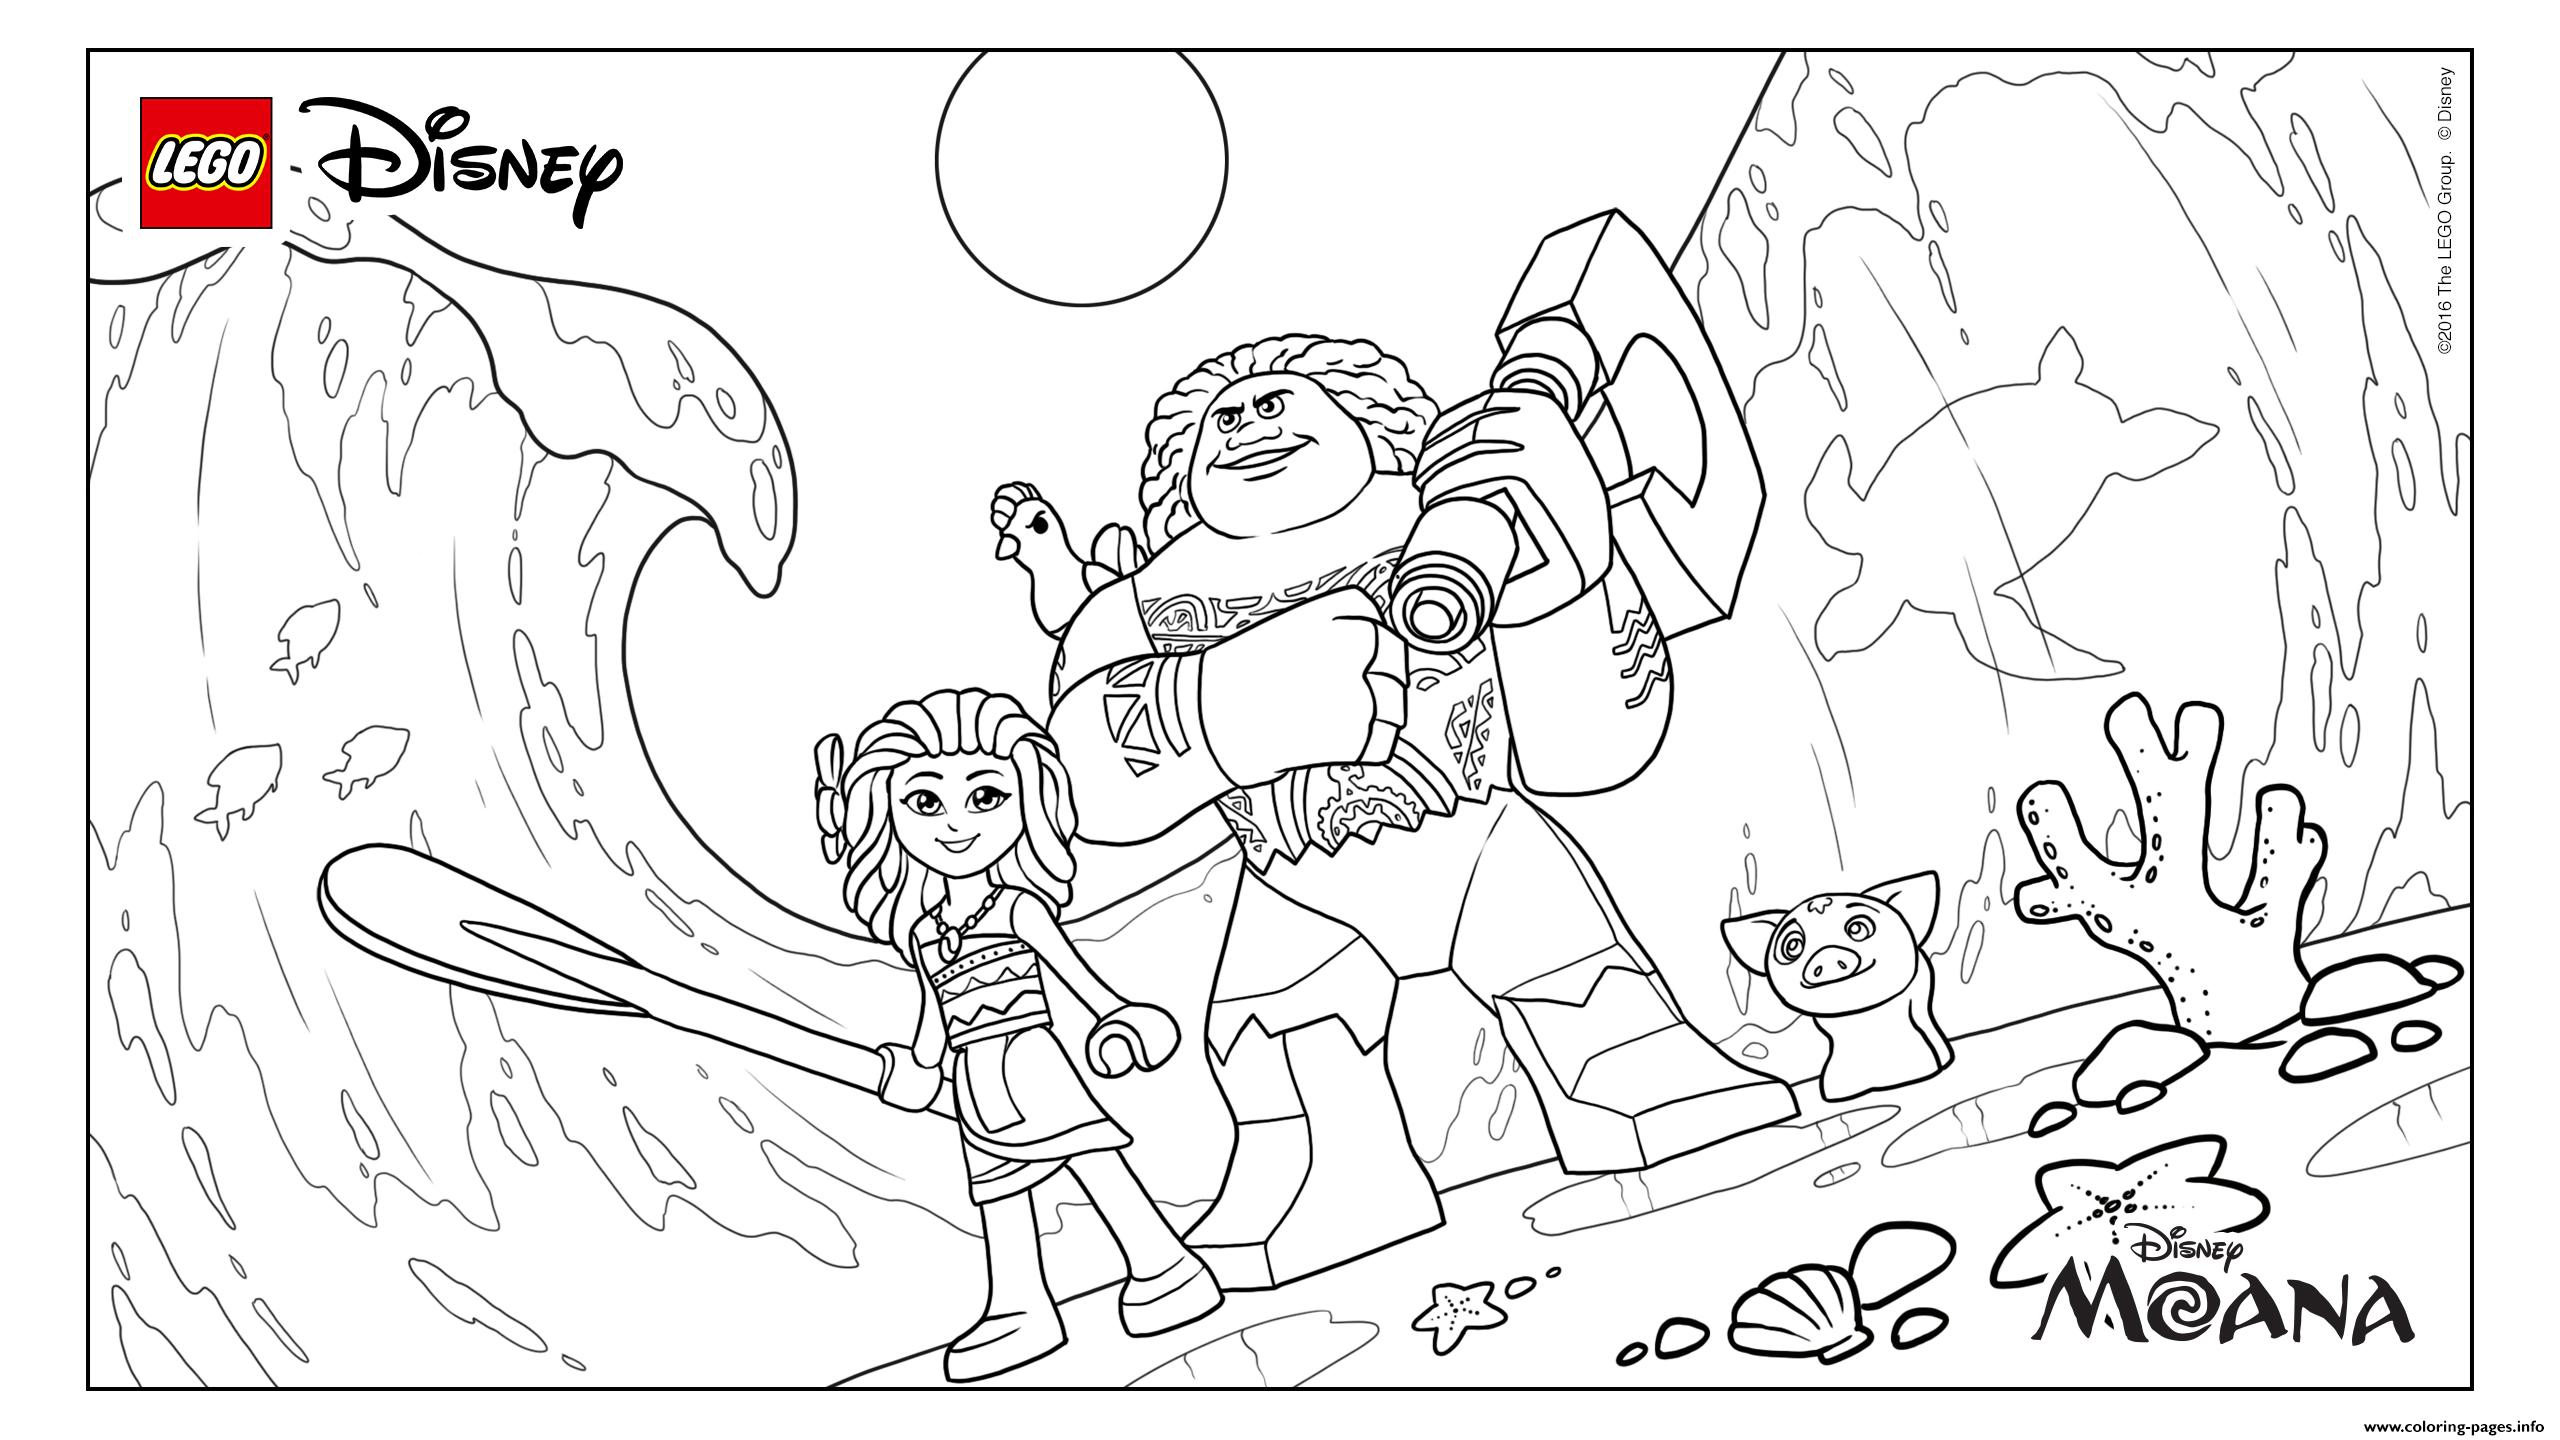 LEGO Moana Movies With Maui Pig Pua Beach coloring pages